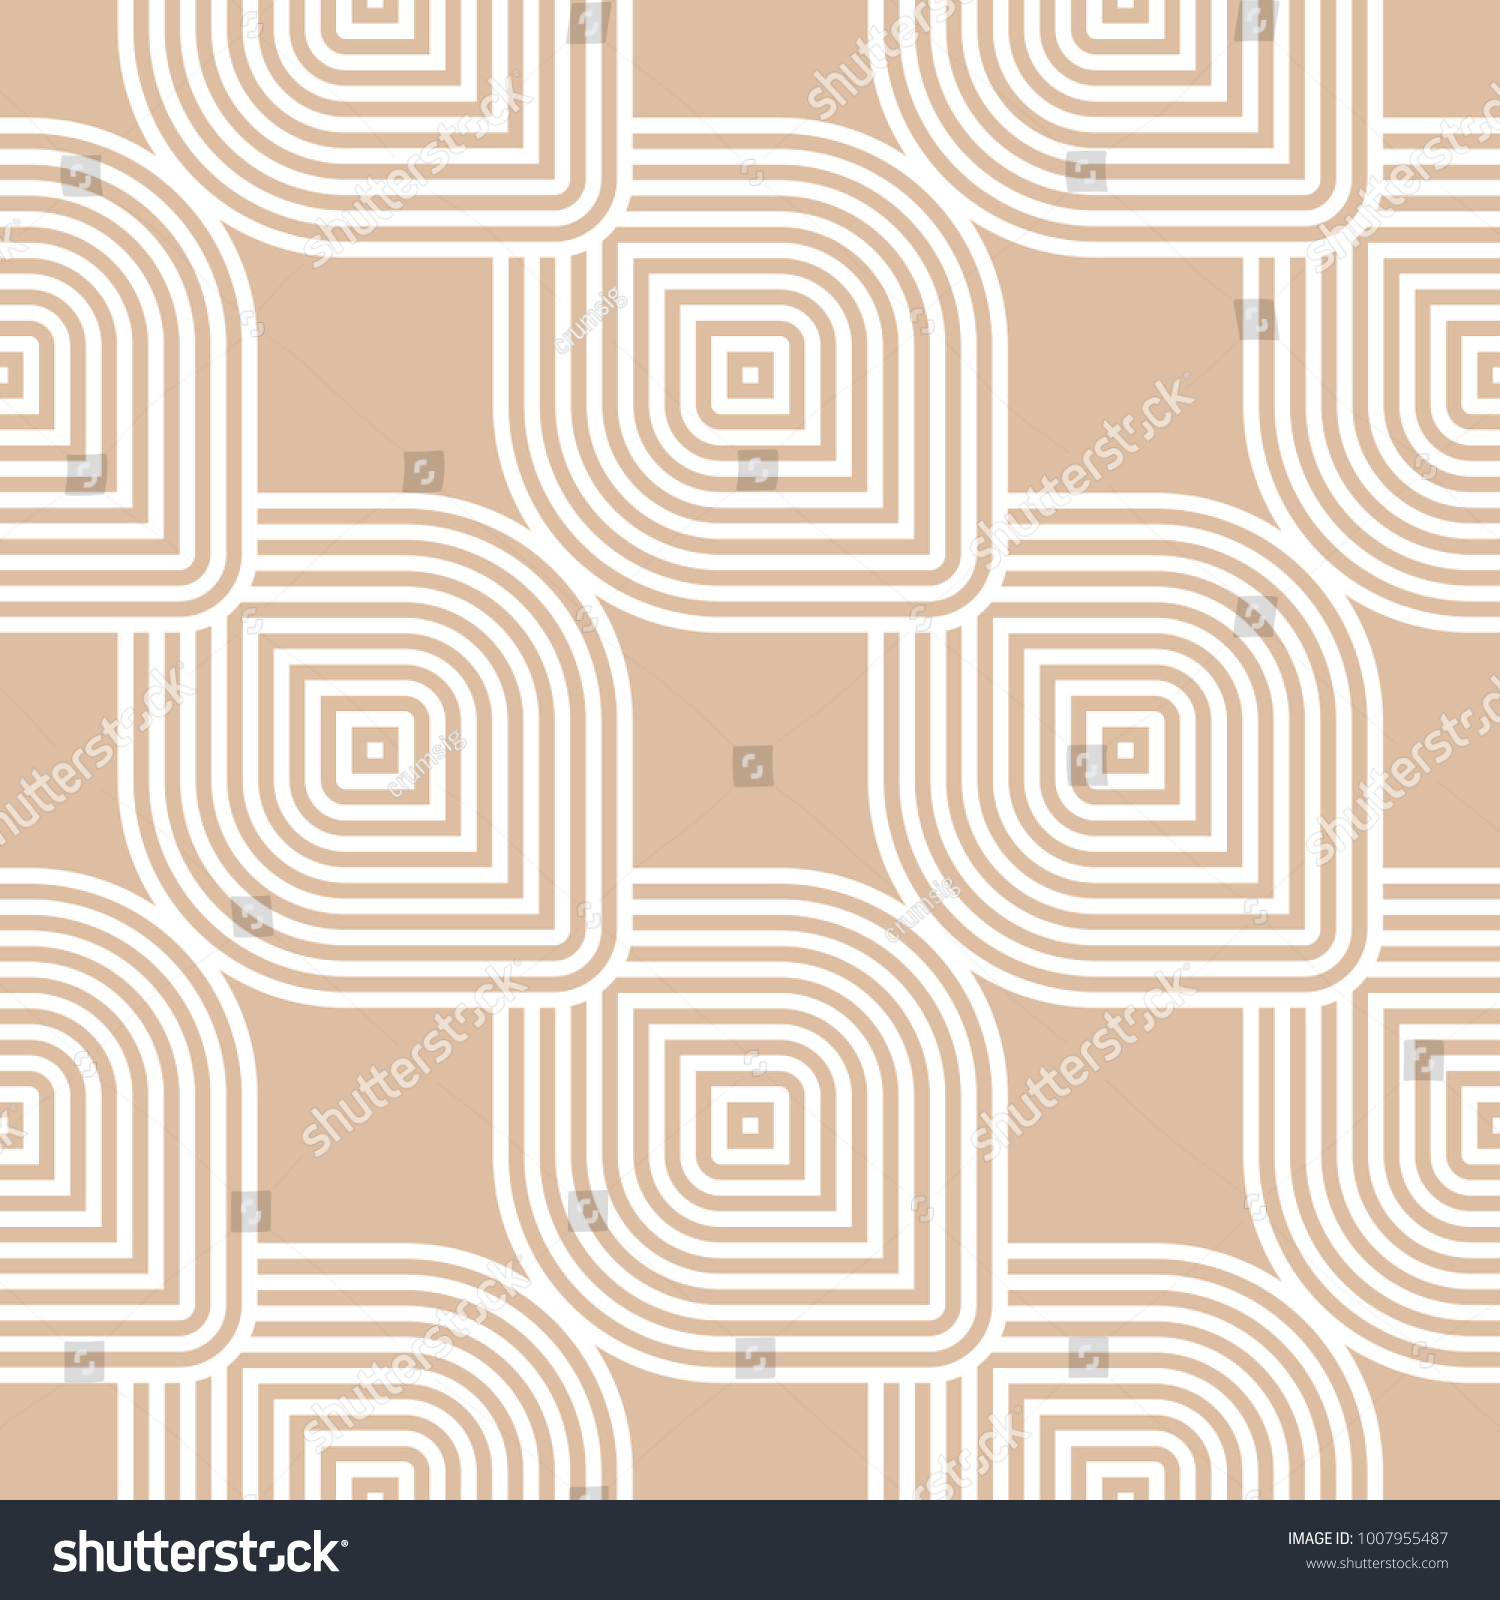 Beige And White Geometric Ornament Seamless Pattern For Web, Textile